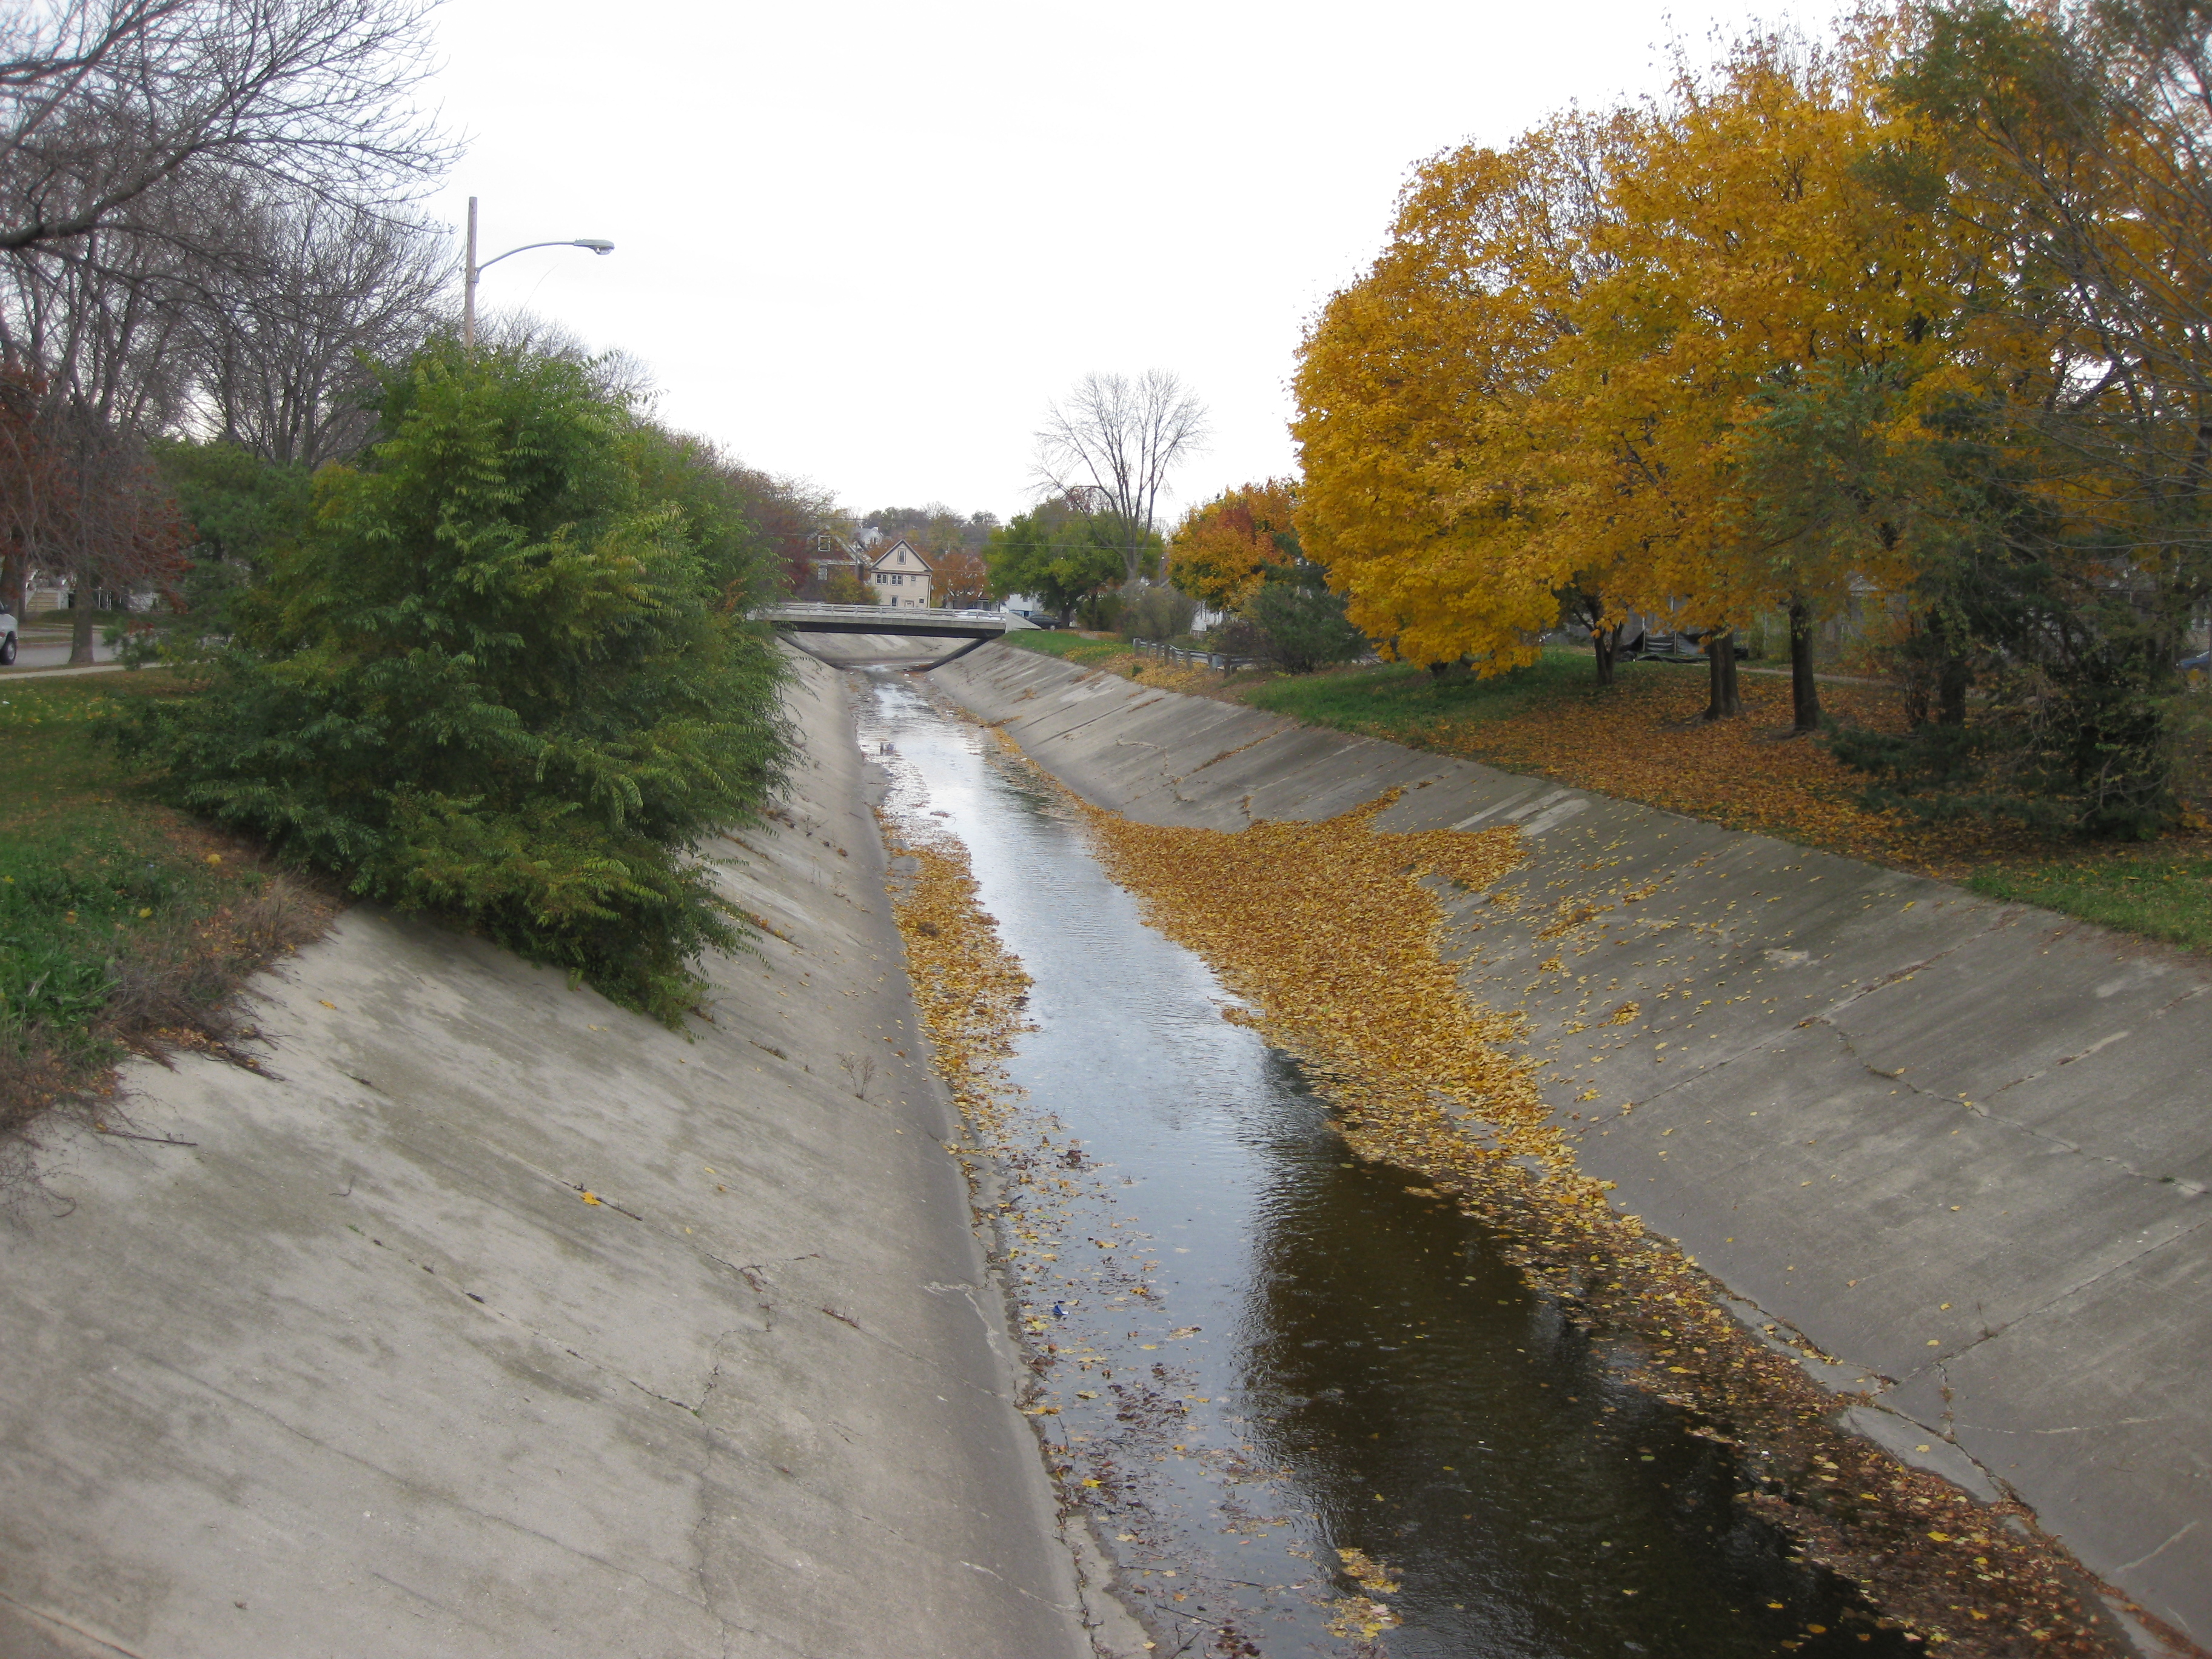 The channel is that the river channel, its character and change 65